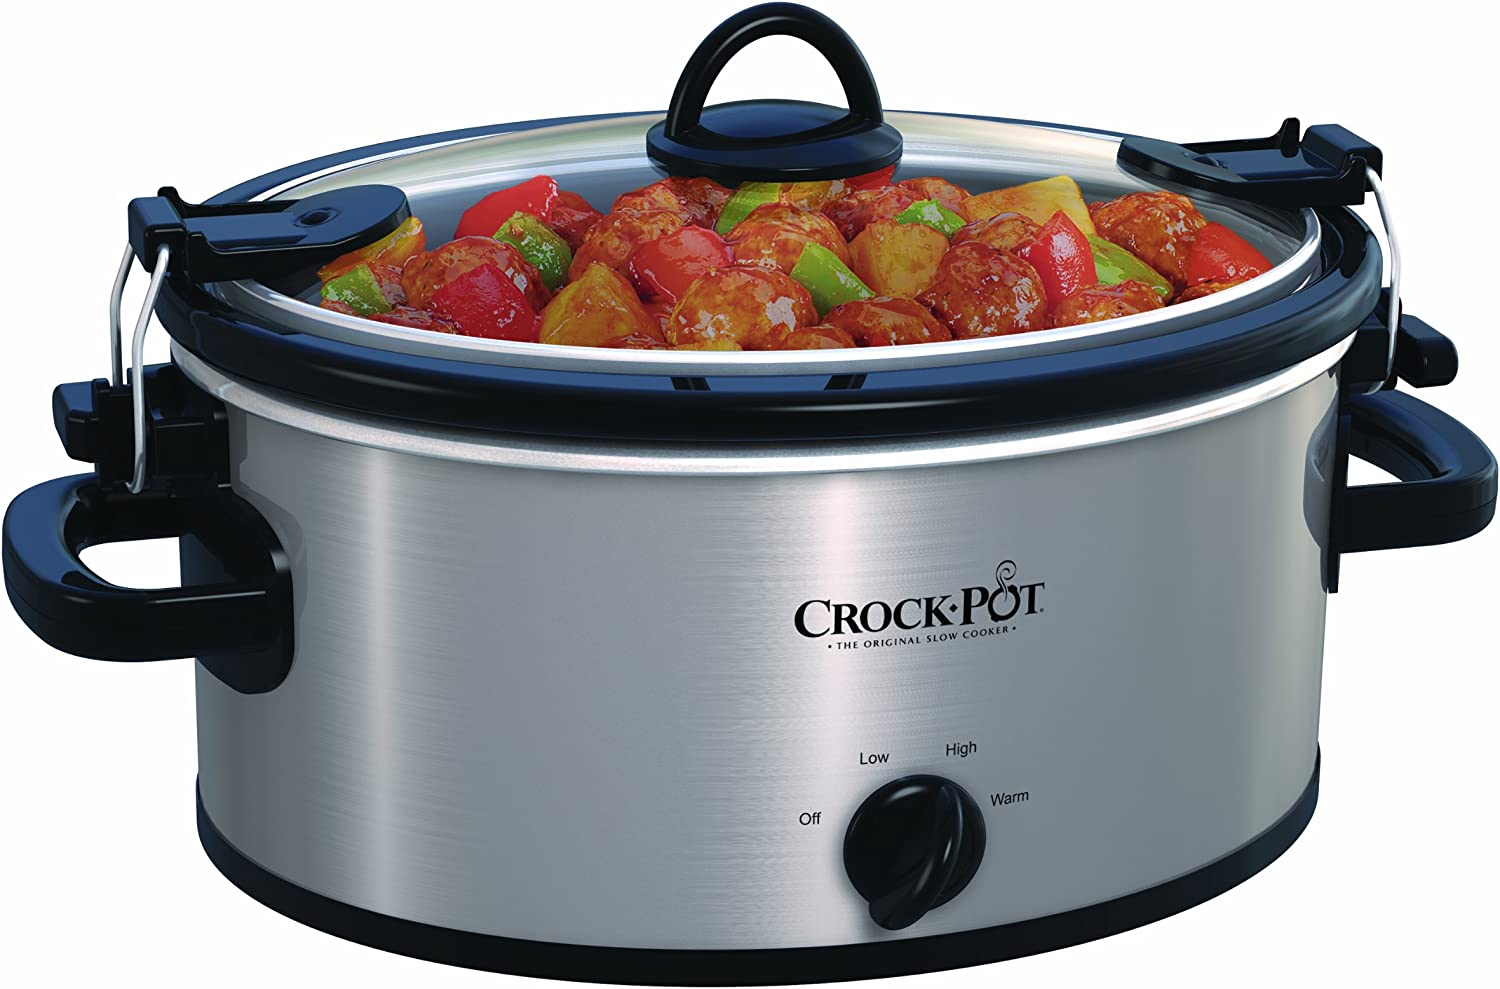 Silver Crock-Pot SCCPVL400-S 4-Quart Cook and Carry Slow Cooker Stainless Steel